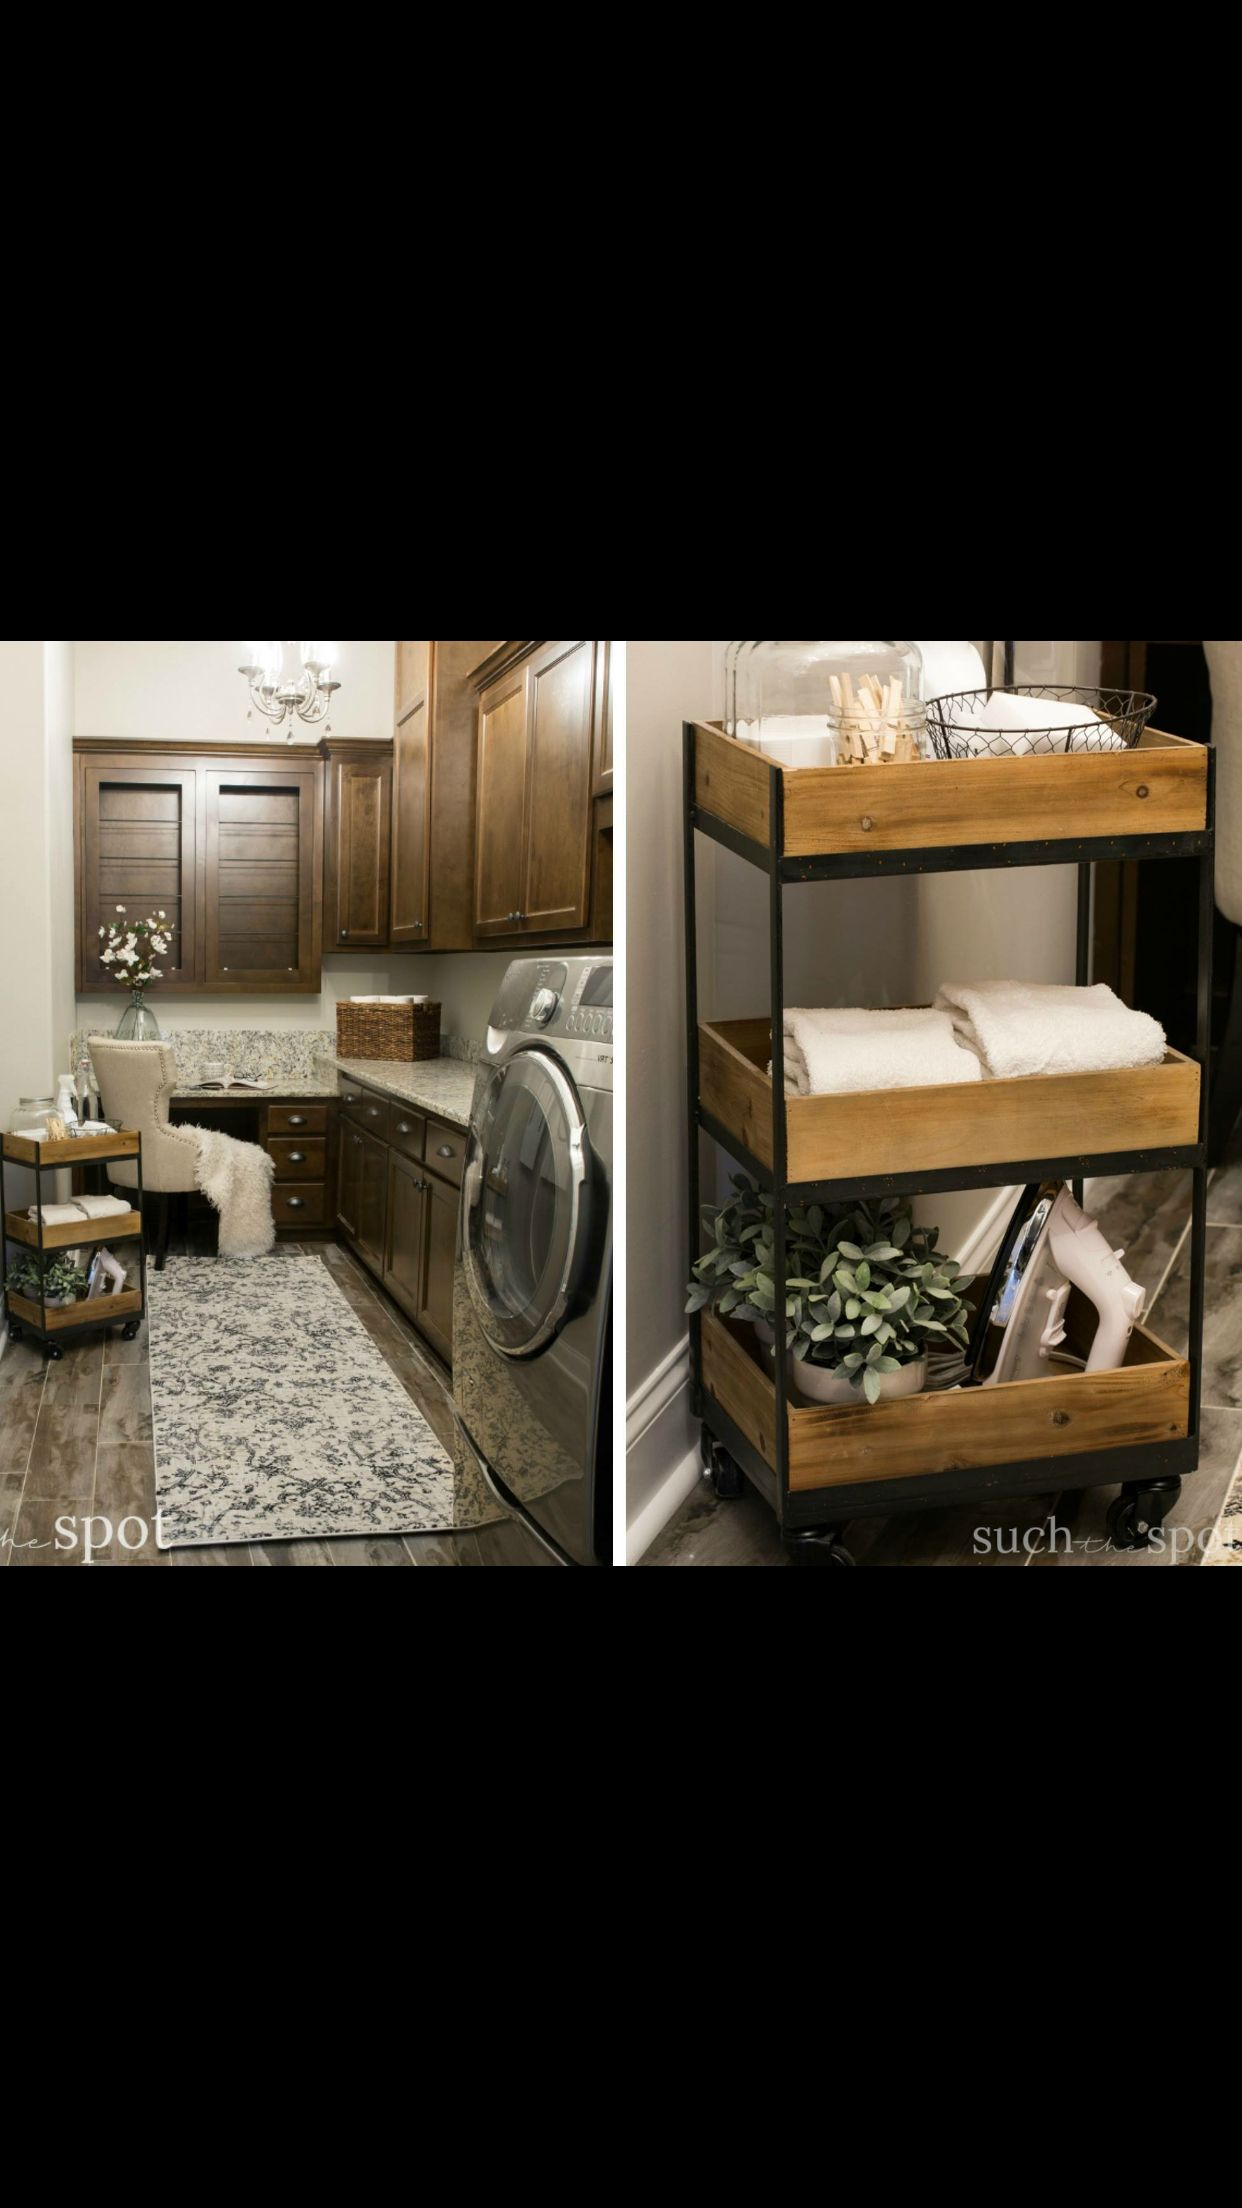 10x10 Laundry Room Layout: Pin By Keri Baugher On Laundry Layouts